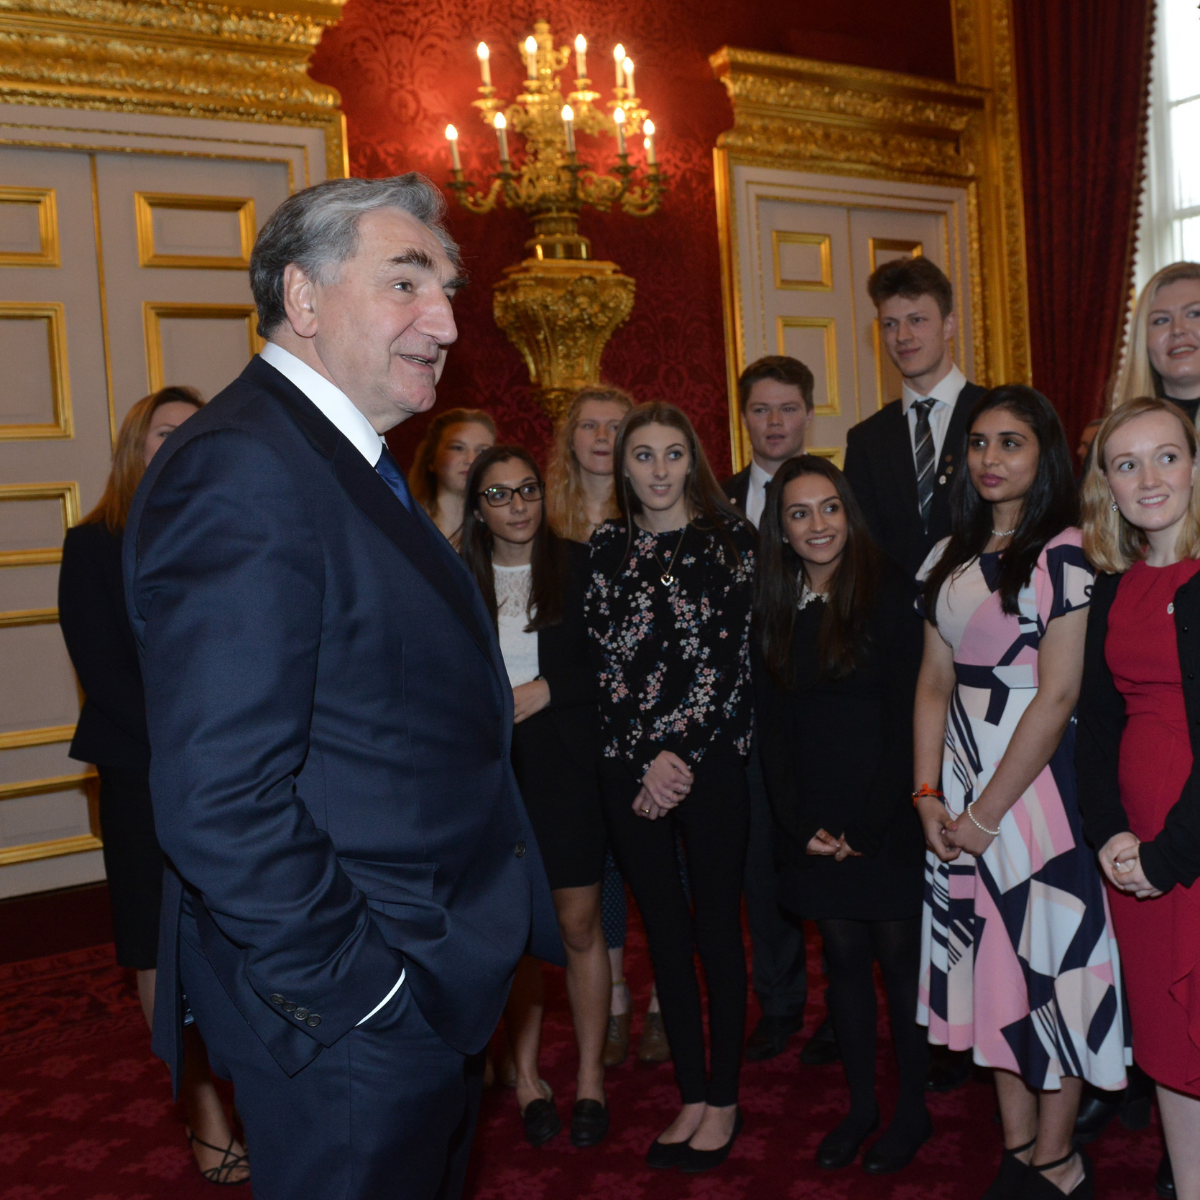 Jim Carter at DofE Gold Award presentation